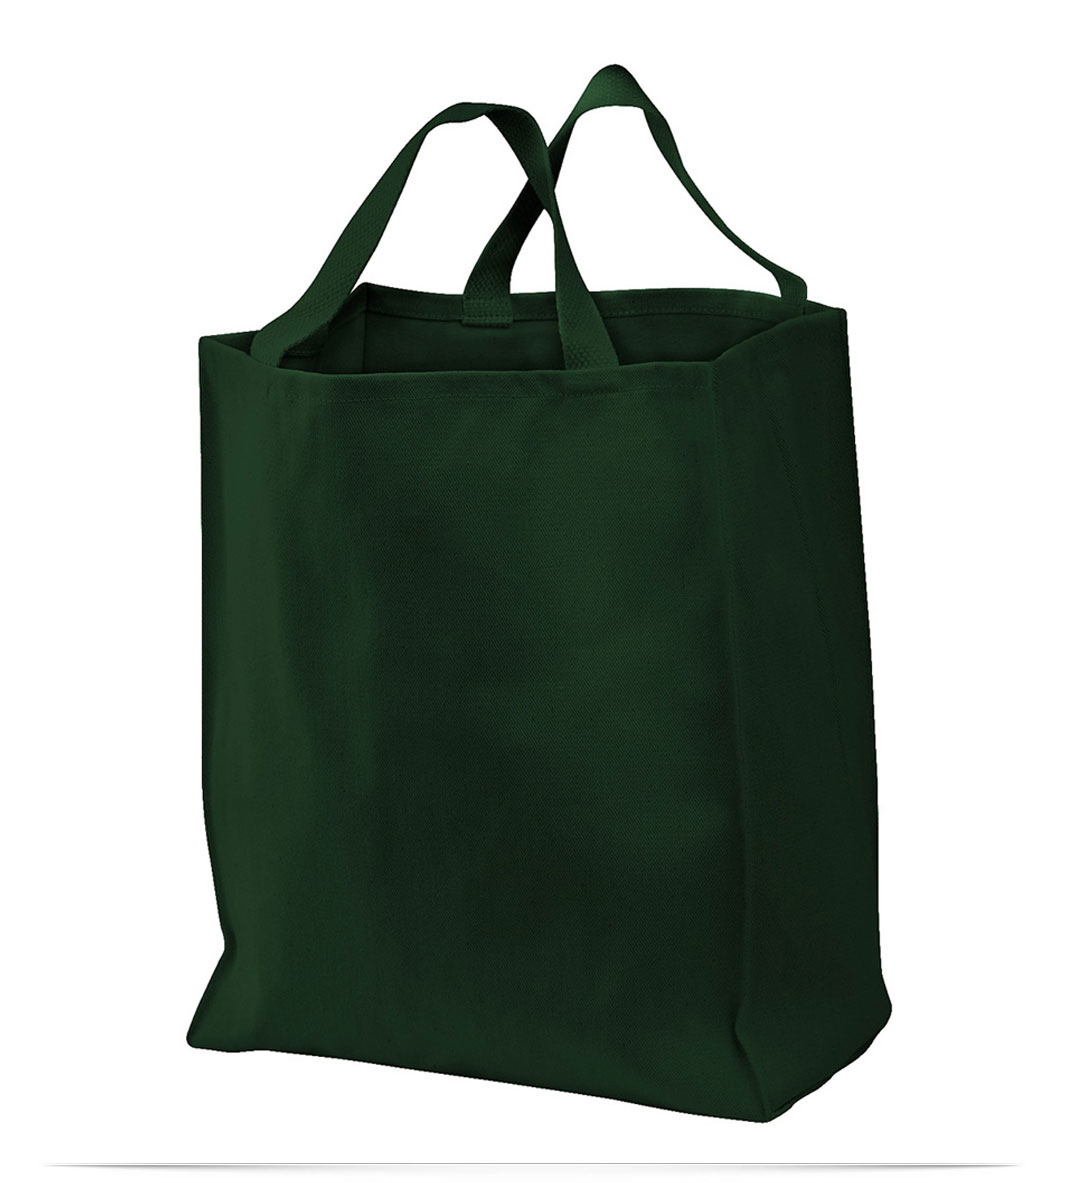 Personalized Grocery Tote Bag with Custom Logo